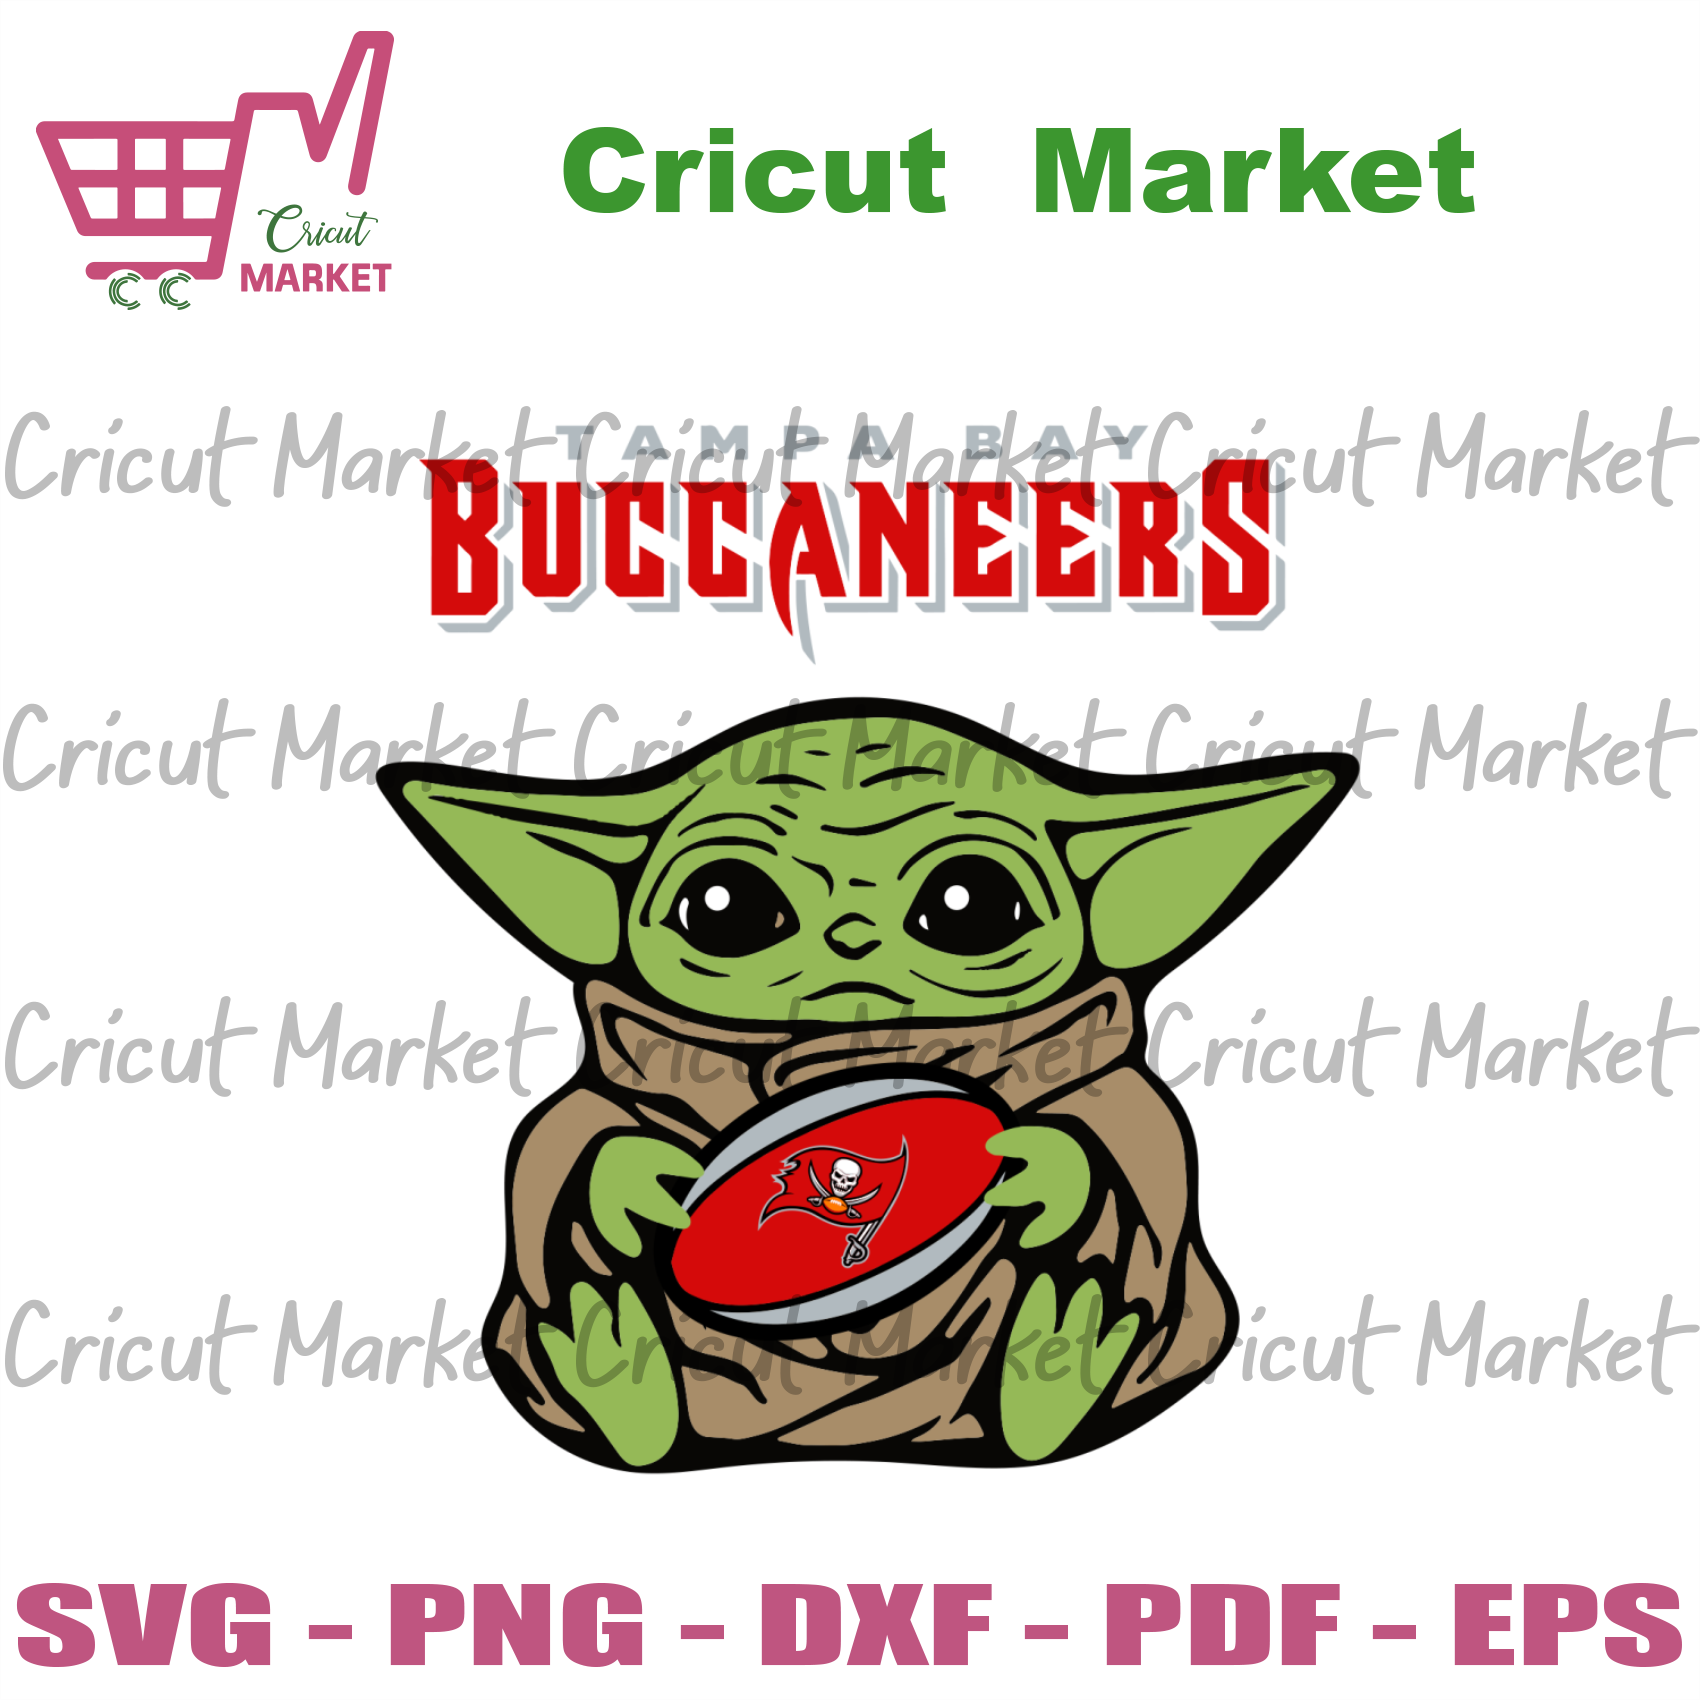 Tampa Bay Buccaneers Baby Yoda, Sport Svg, Tampa Bay Buccaneers Svg, Baby Yoda Svg, Buccaneers Football, Tampa Bay Buccaneers Logo, Buccaneers Shirt, NFL Gift Ideas, NFL Football Logo, Footba